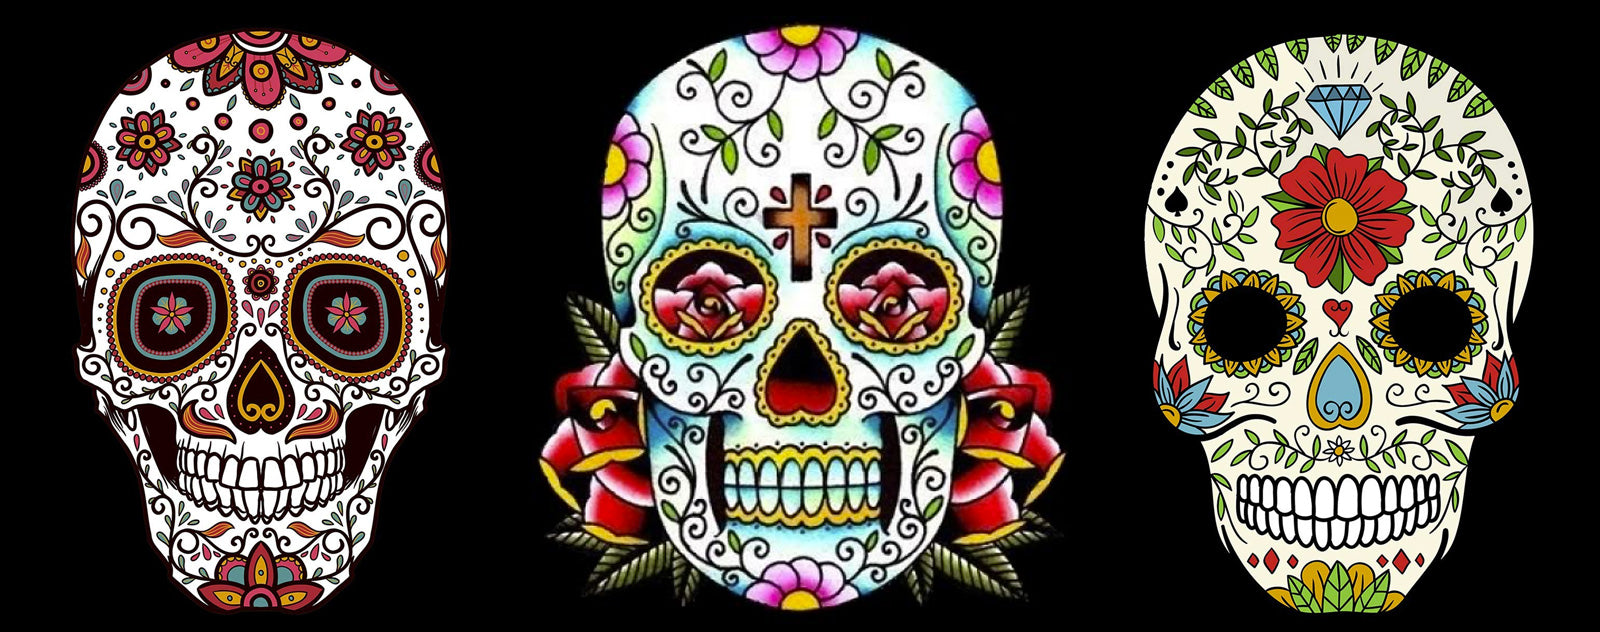 Mexican skull and crossbones decoration